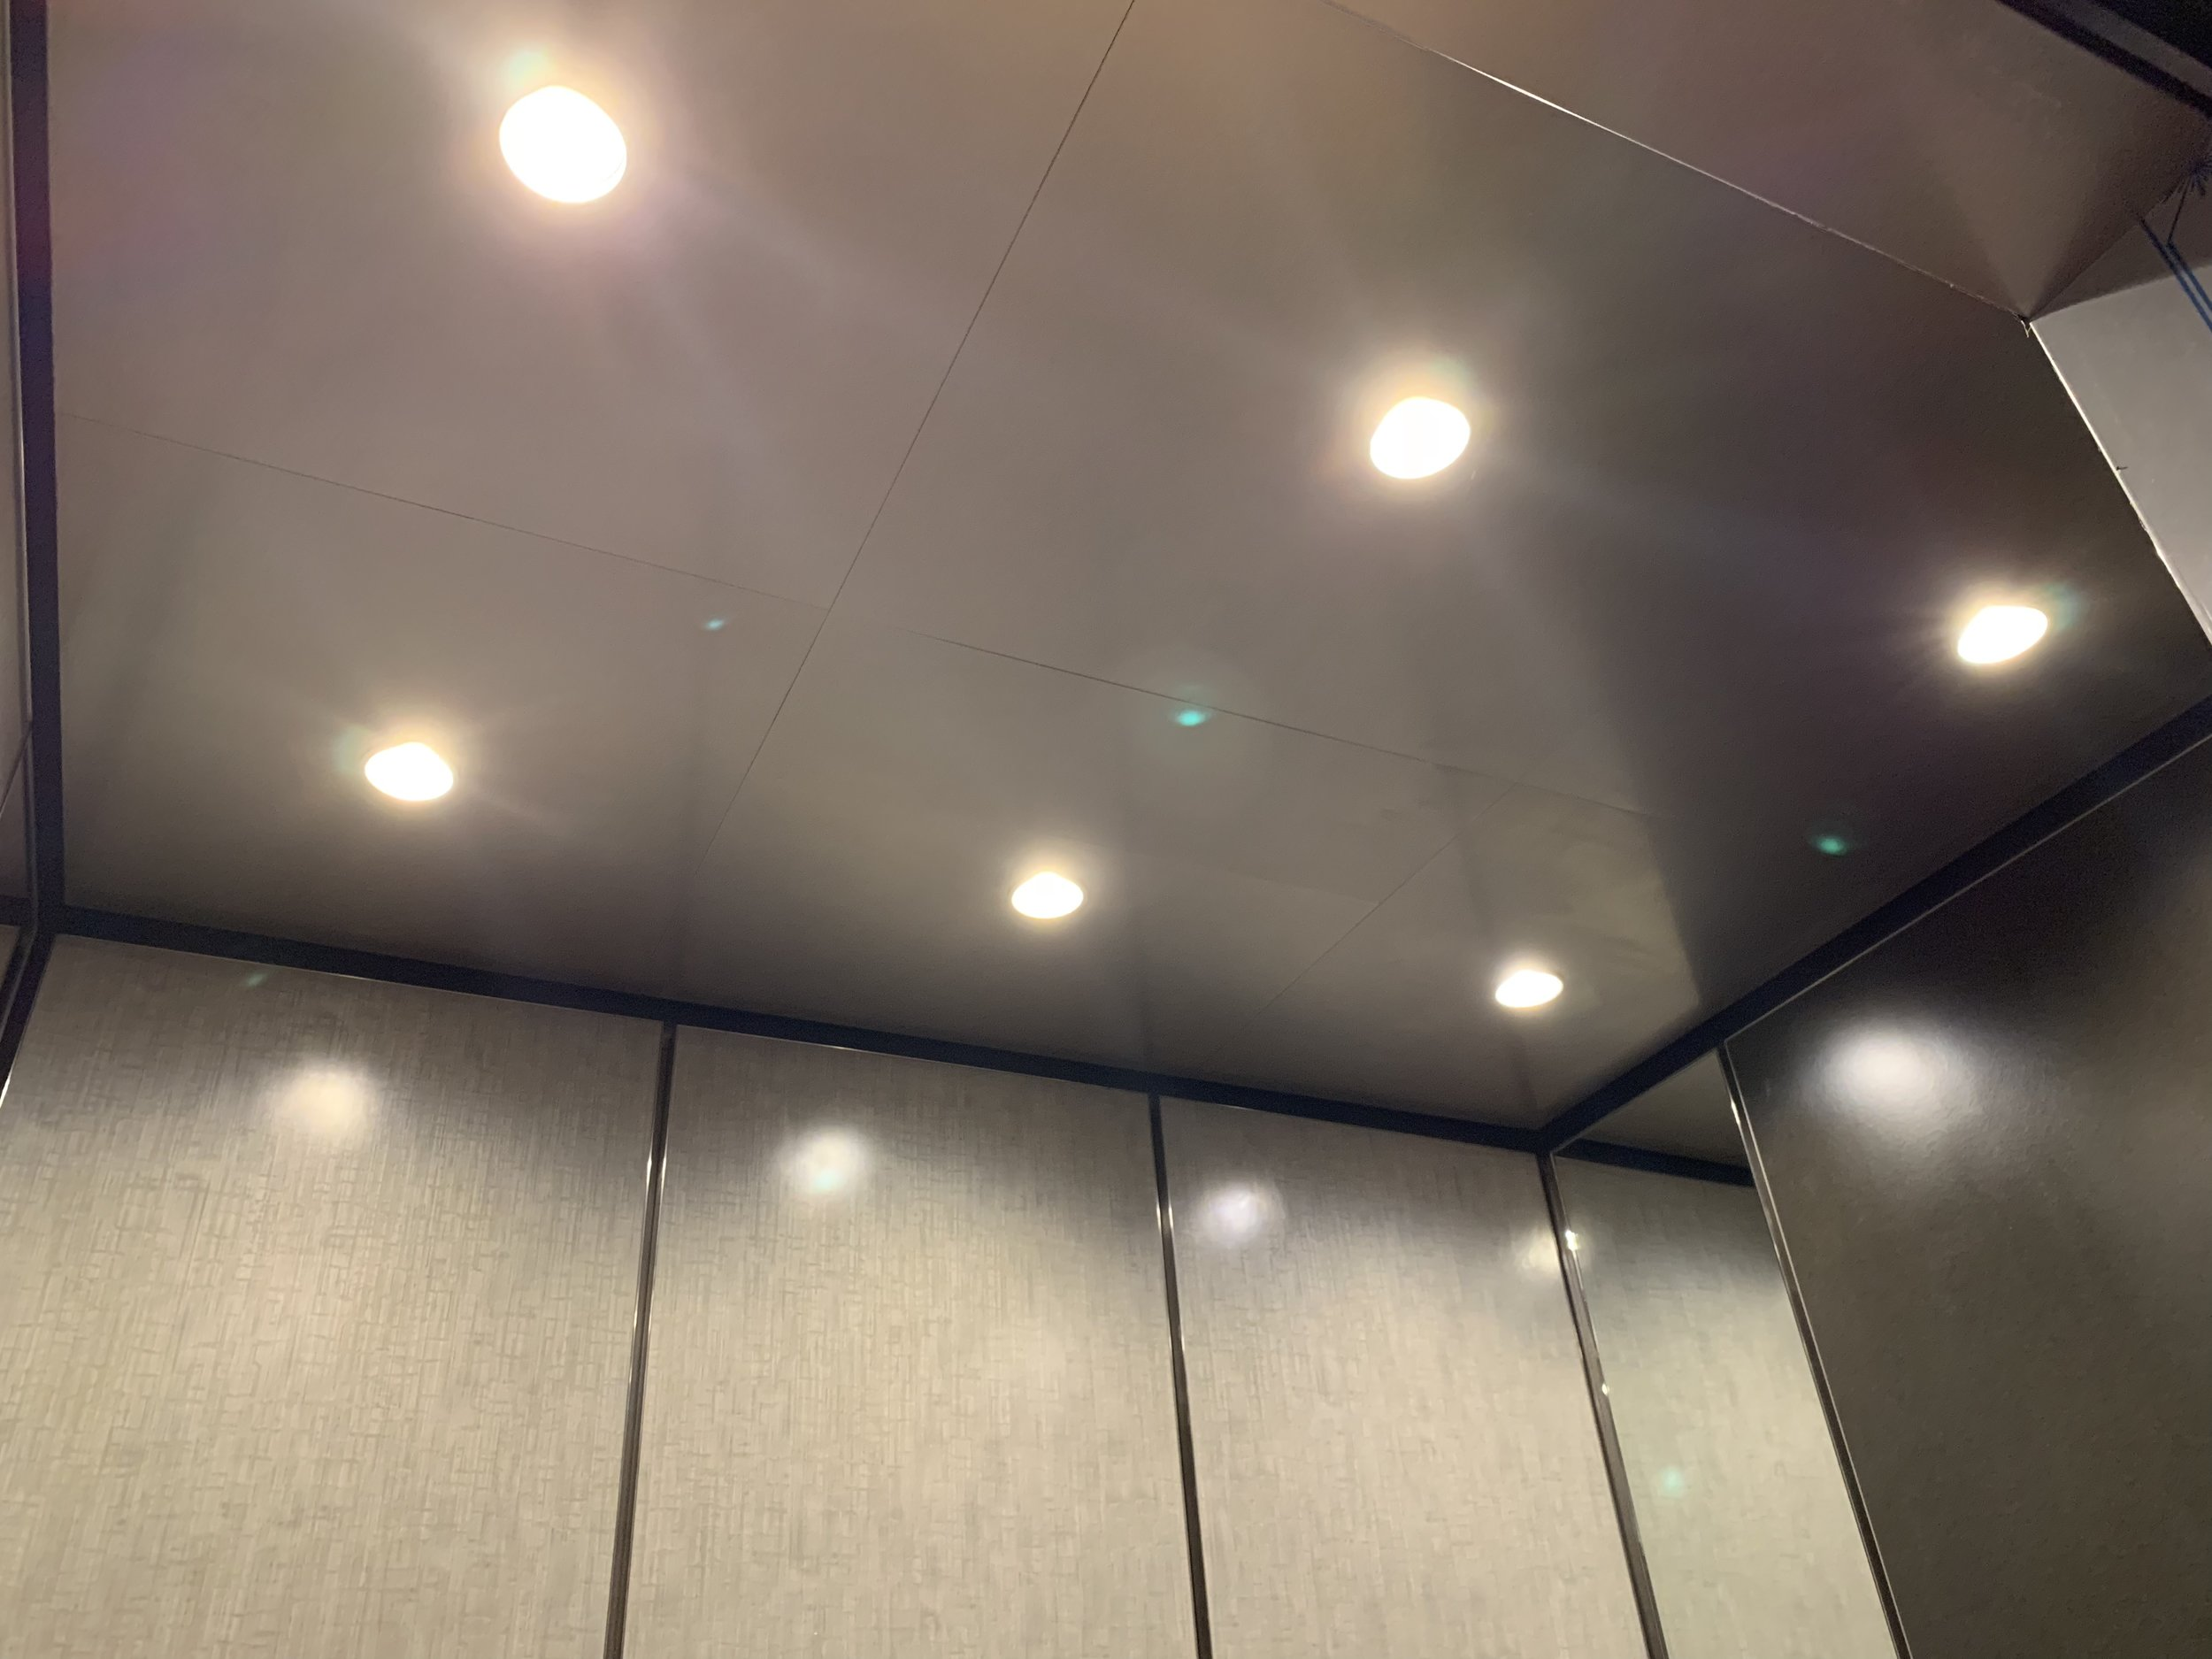 THE JACOB - The Jacob ceiling is a standard suspended ceiling manufactured out of metal with an island design. It features a typical tile design with LED down-light fixtures pre-installed and is on a fire-rated substrate. The Jacob ceiling is easy to install, light-weight and features emergency lighting as a part of the down-light fixture system.